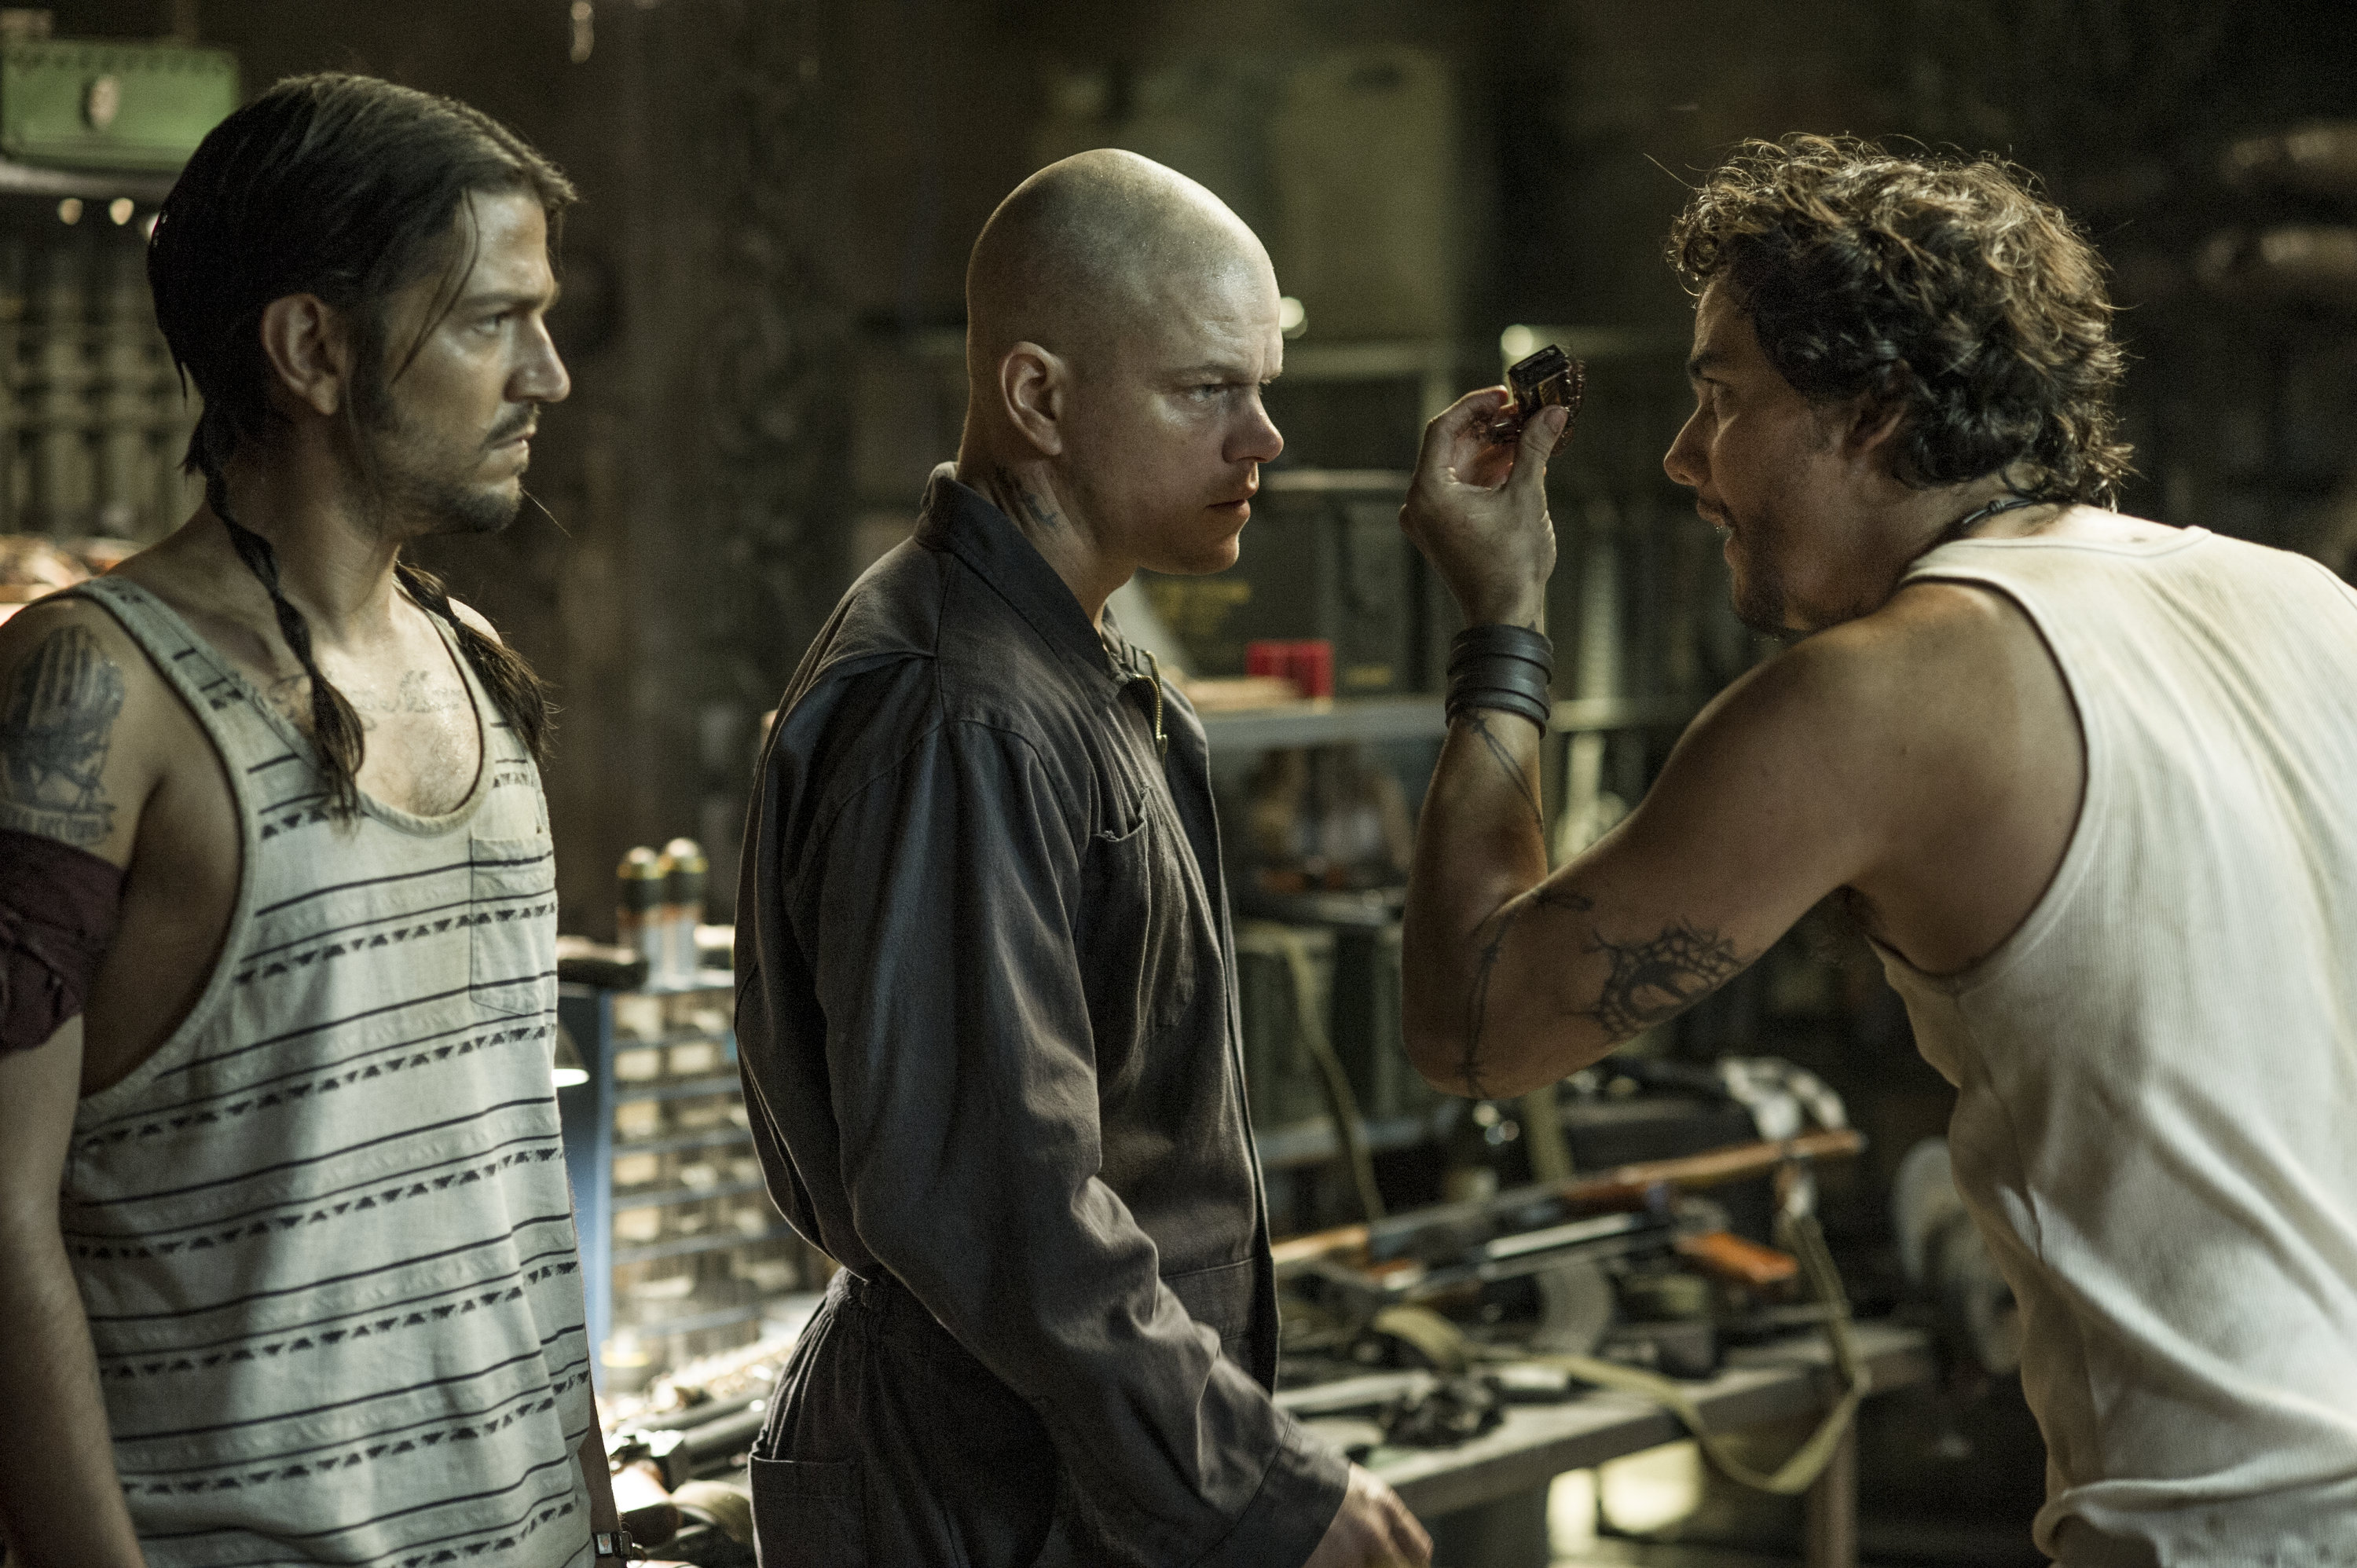 Max (MATT DAMON, center), Julio (DIEGO LUNA, left) and Spider (WAGNER MOURA) meet inside Spider's armory in Columbia Pictures' ELYSIUM.